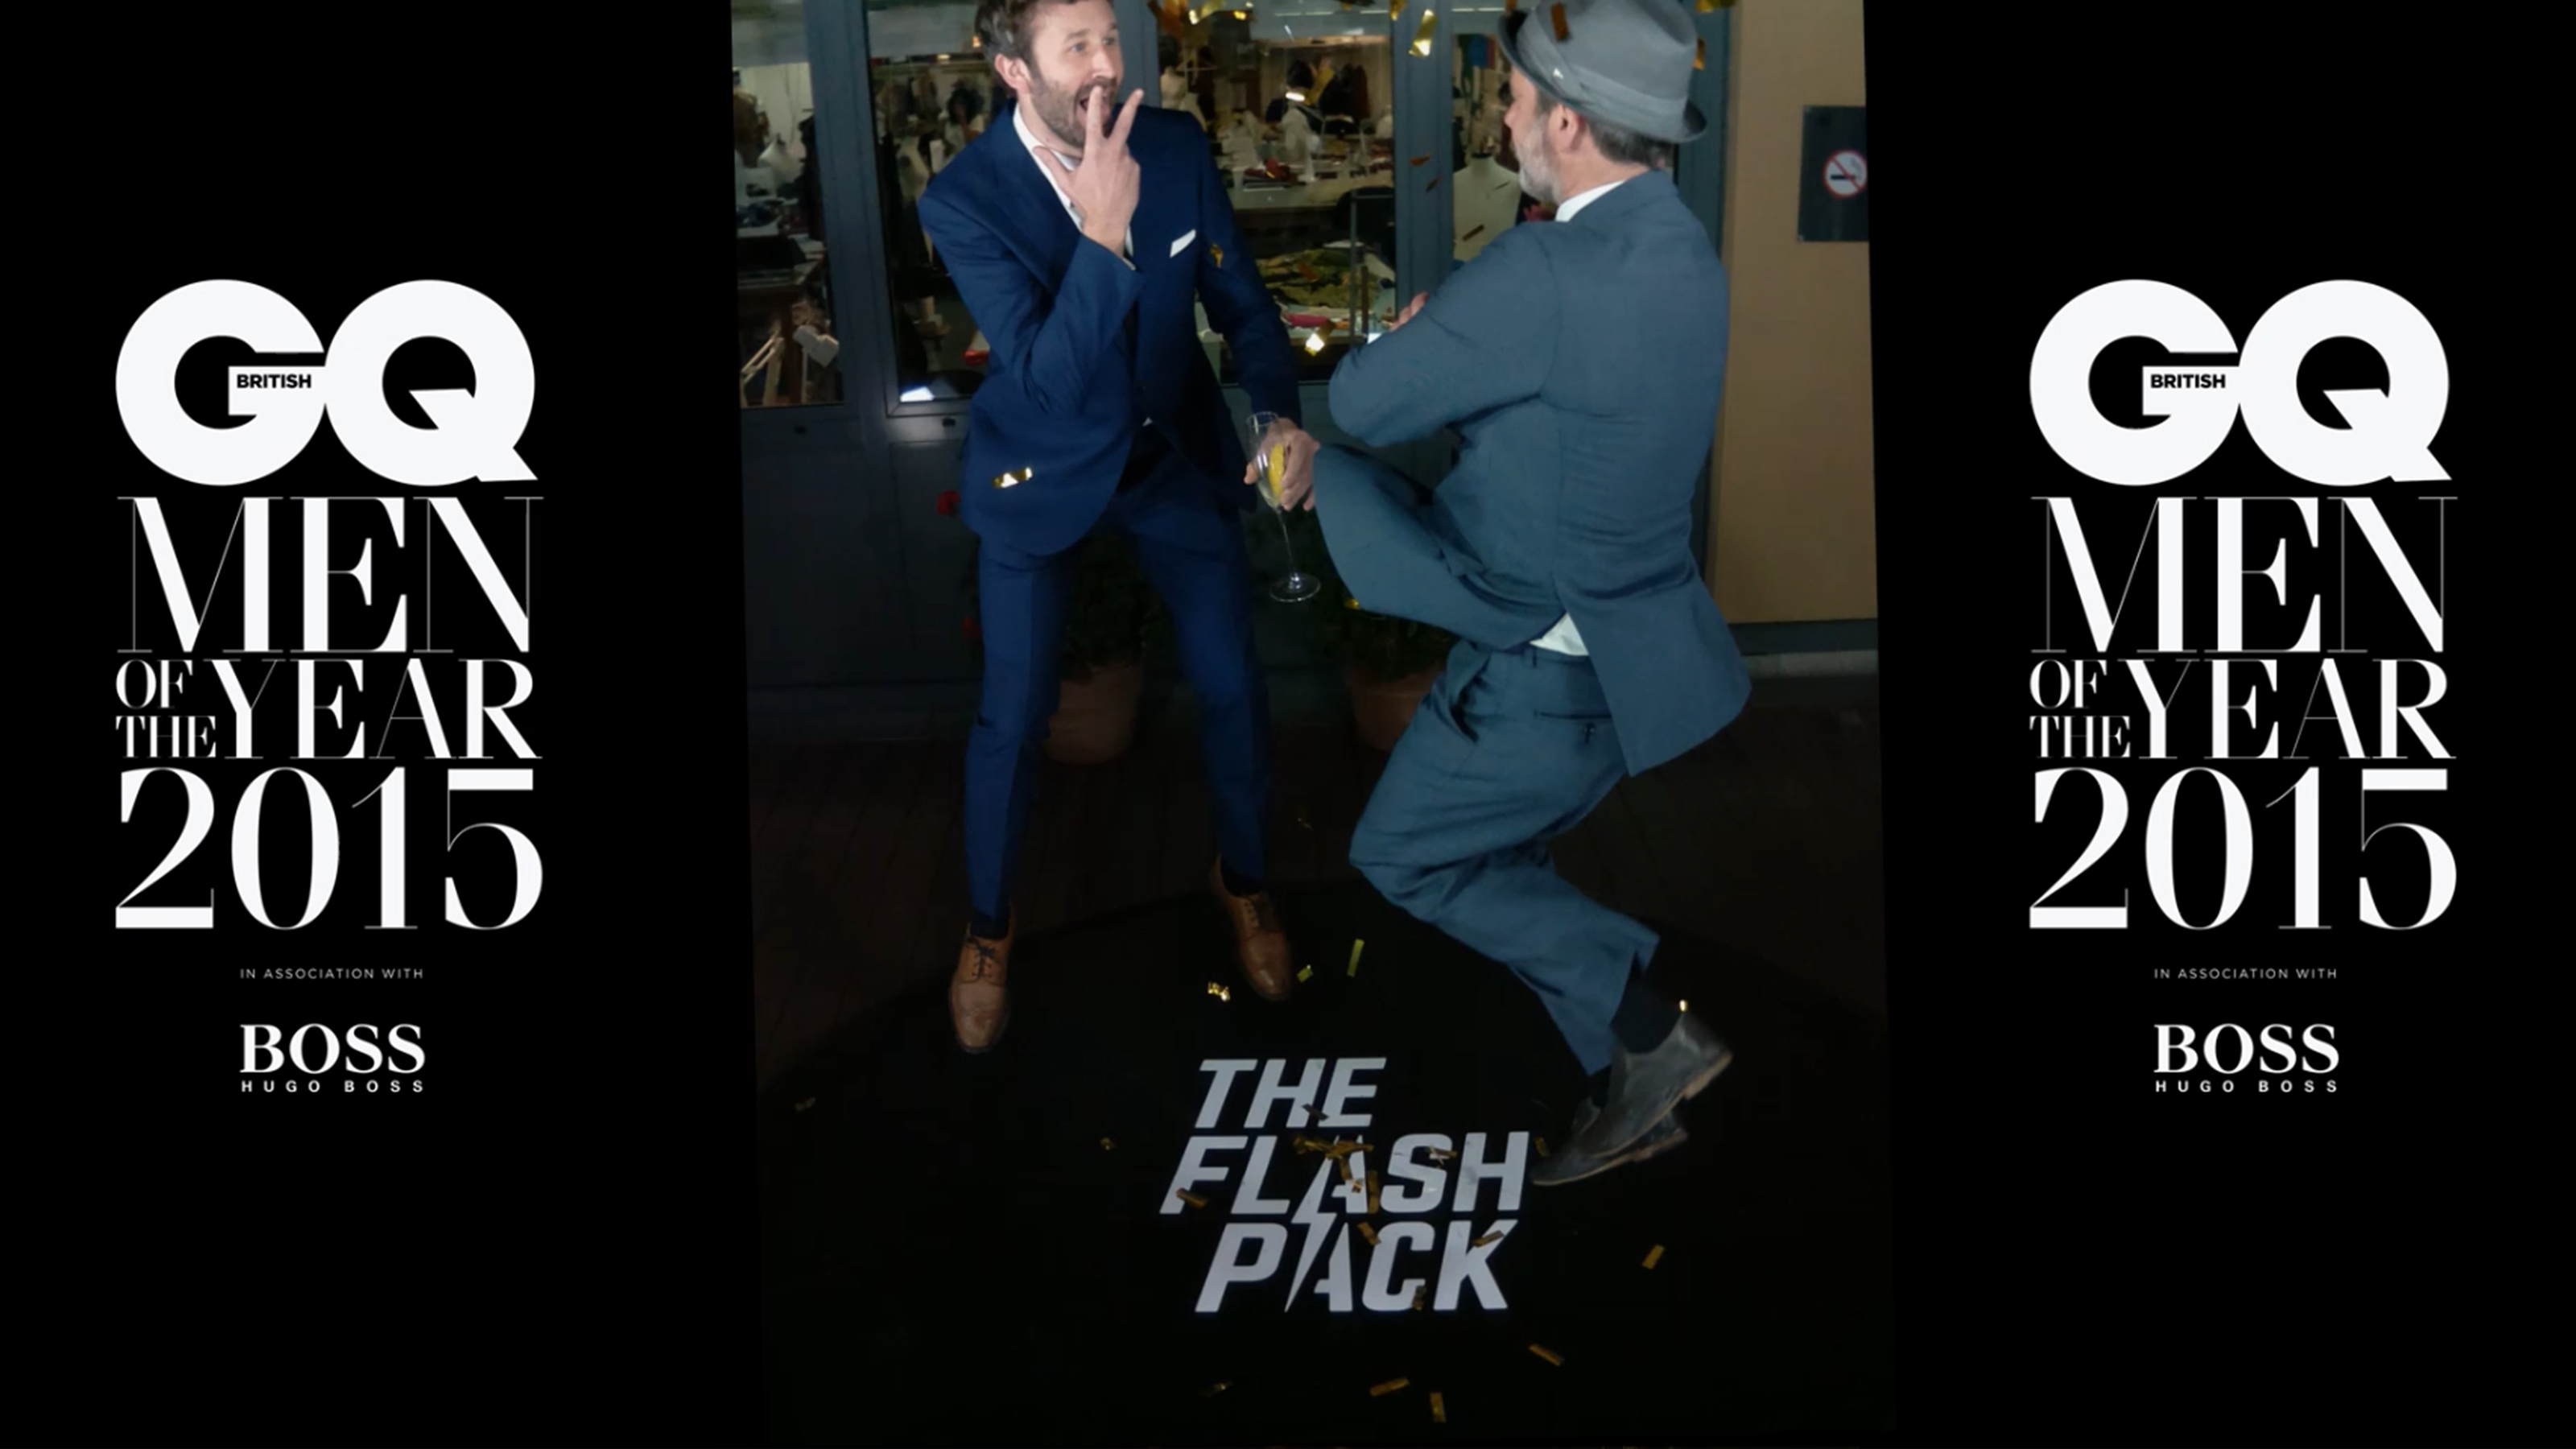 Chris O'Dowd hits The Flash Pack multi camera bullet rig at the 2015 GQ MOTY Awards